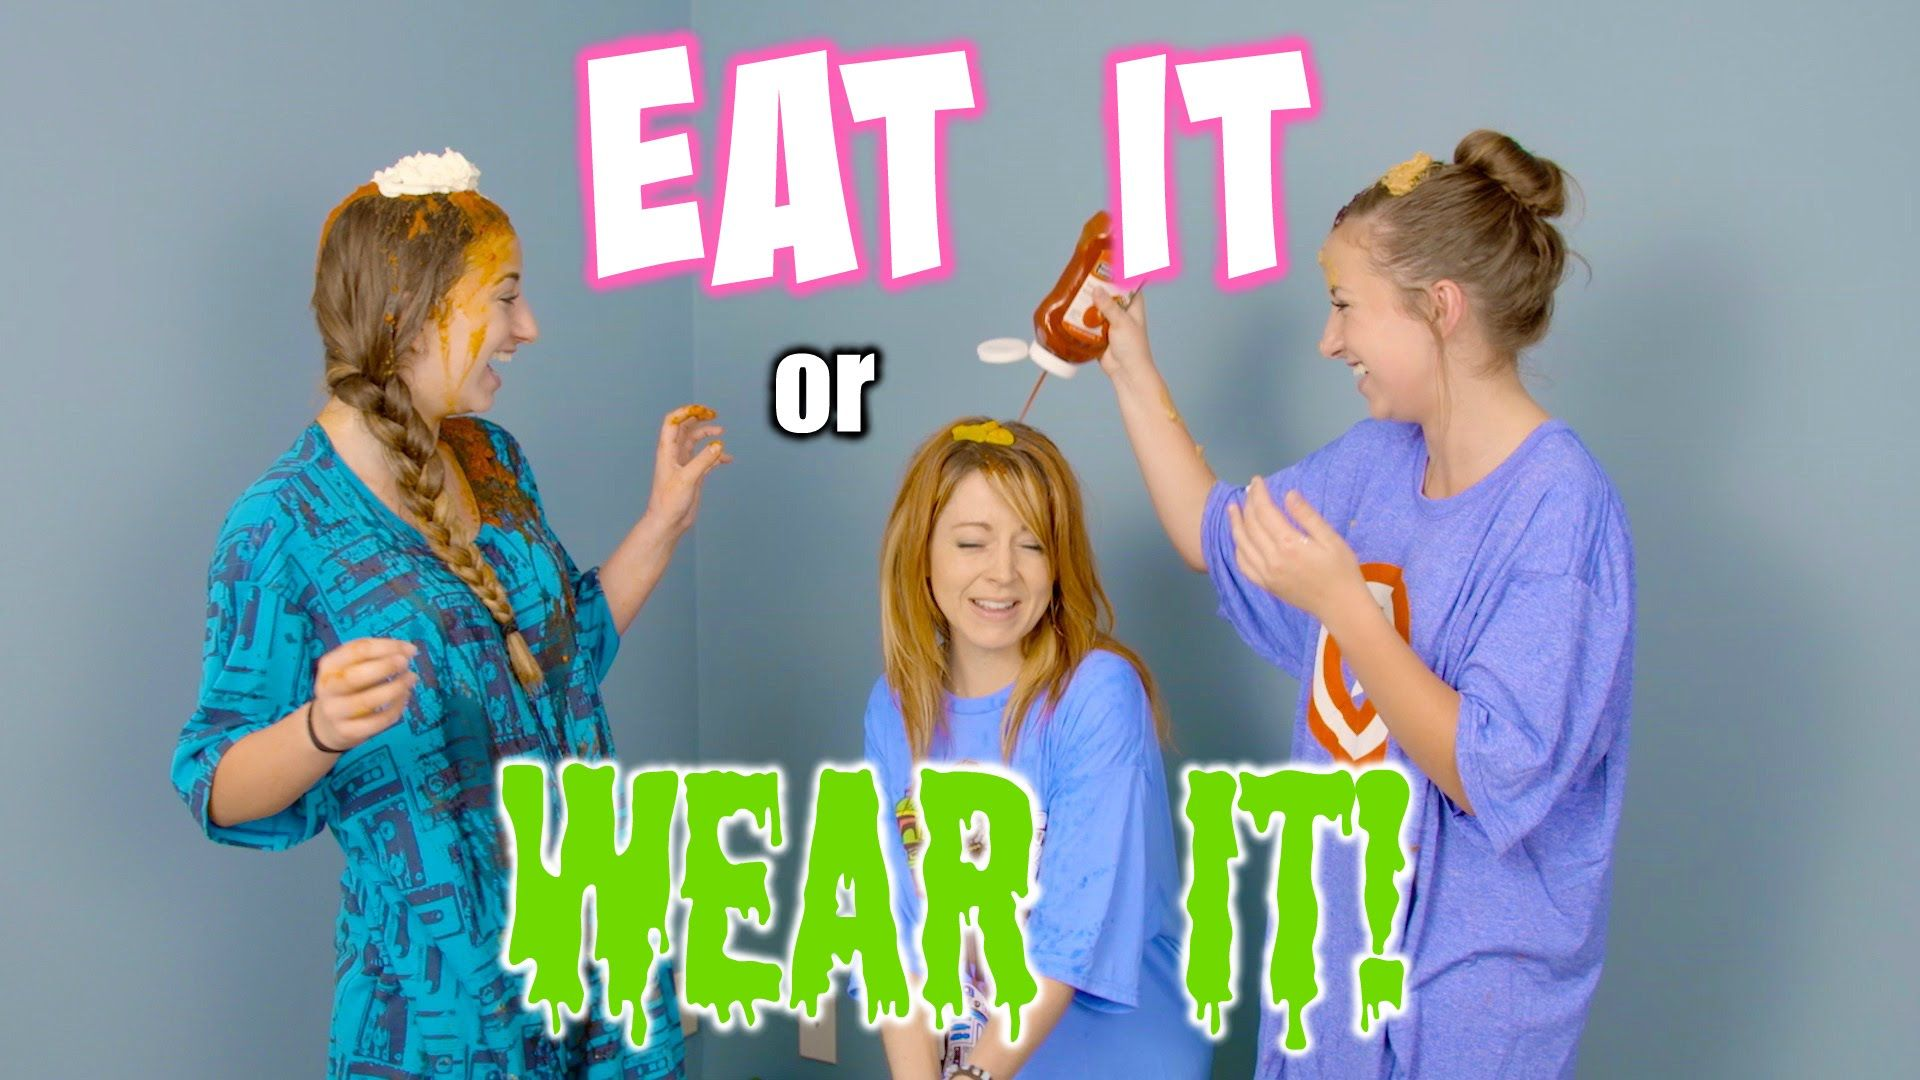 watch us do the eat it or wear it challenge with our good friend